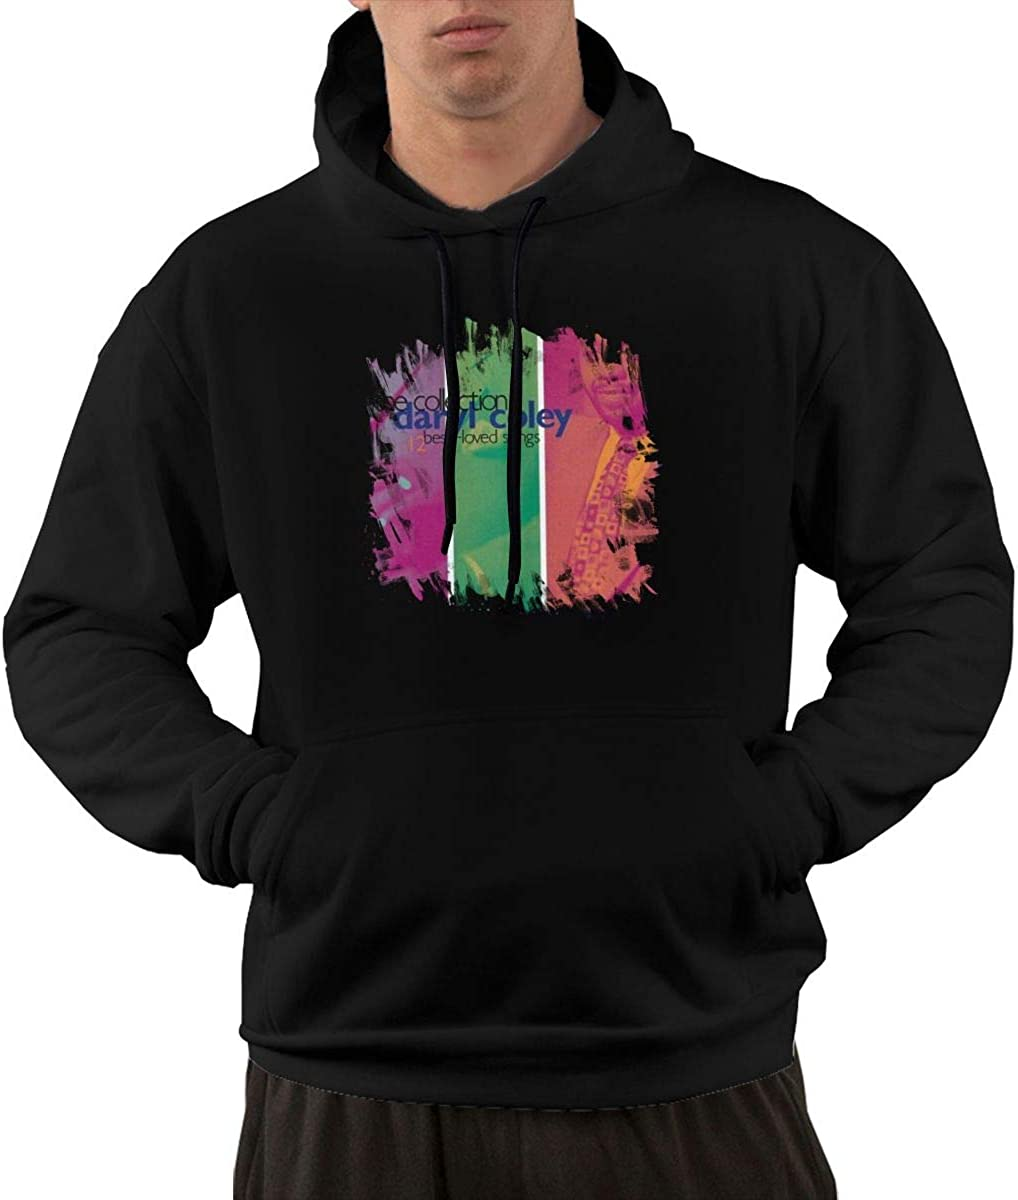 Dary Cole#Th Collectio- 12 BES Love Song Men's Hooded Pocket Sweater Black